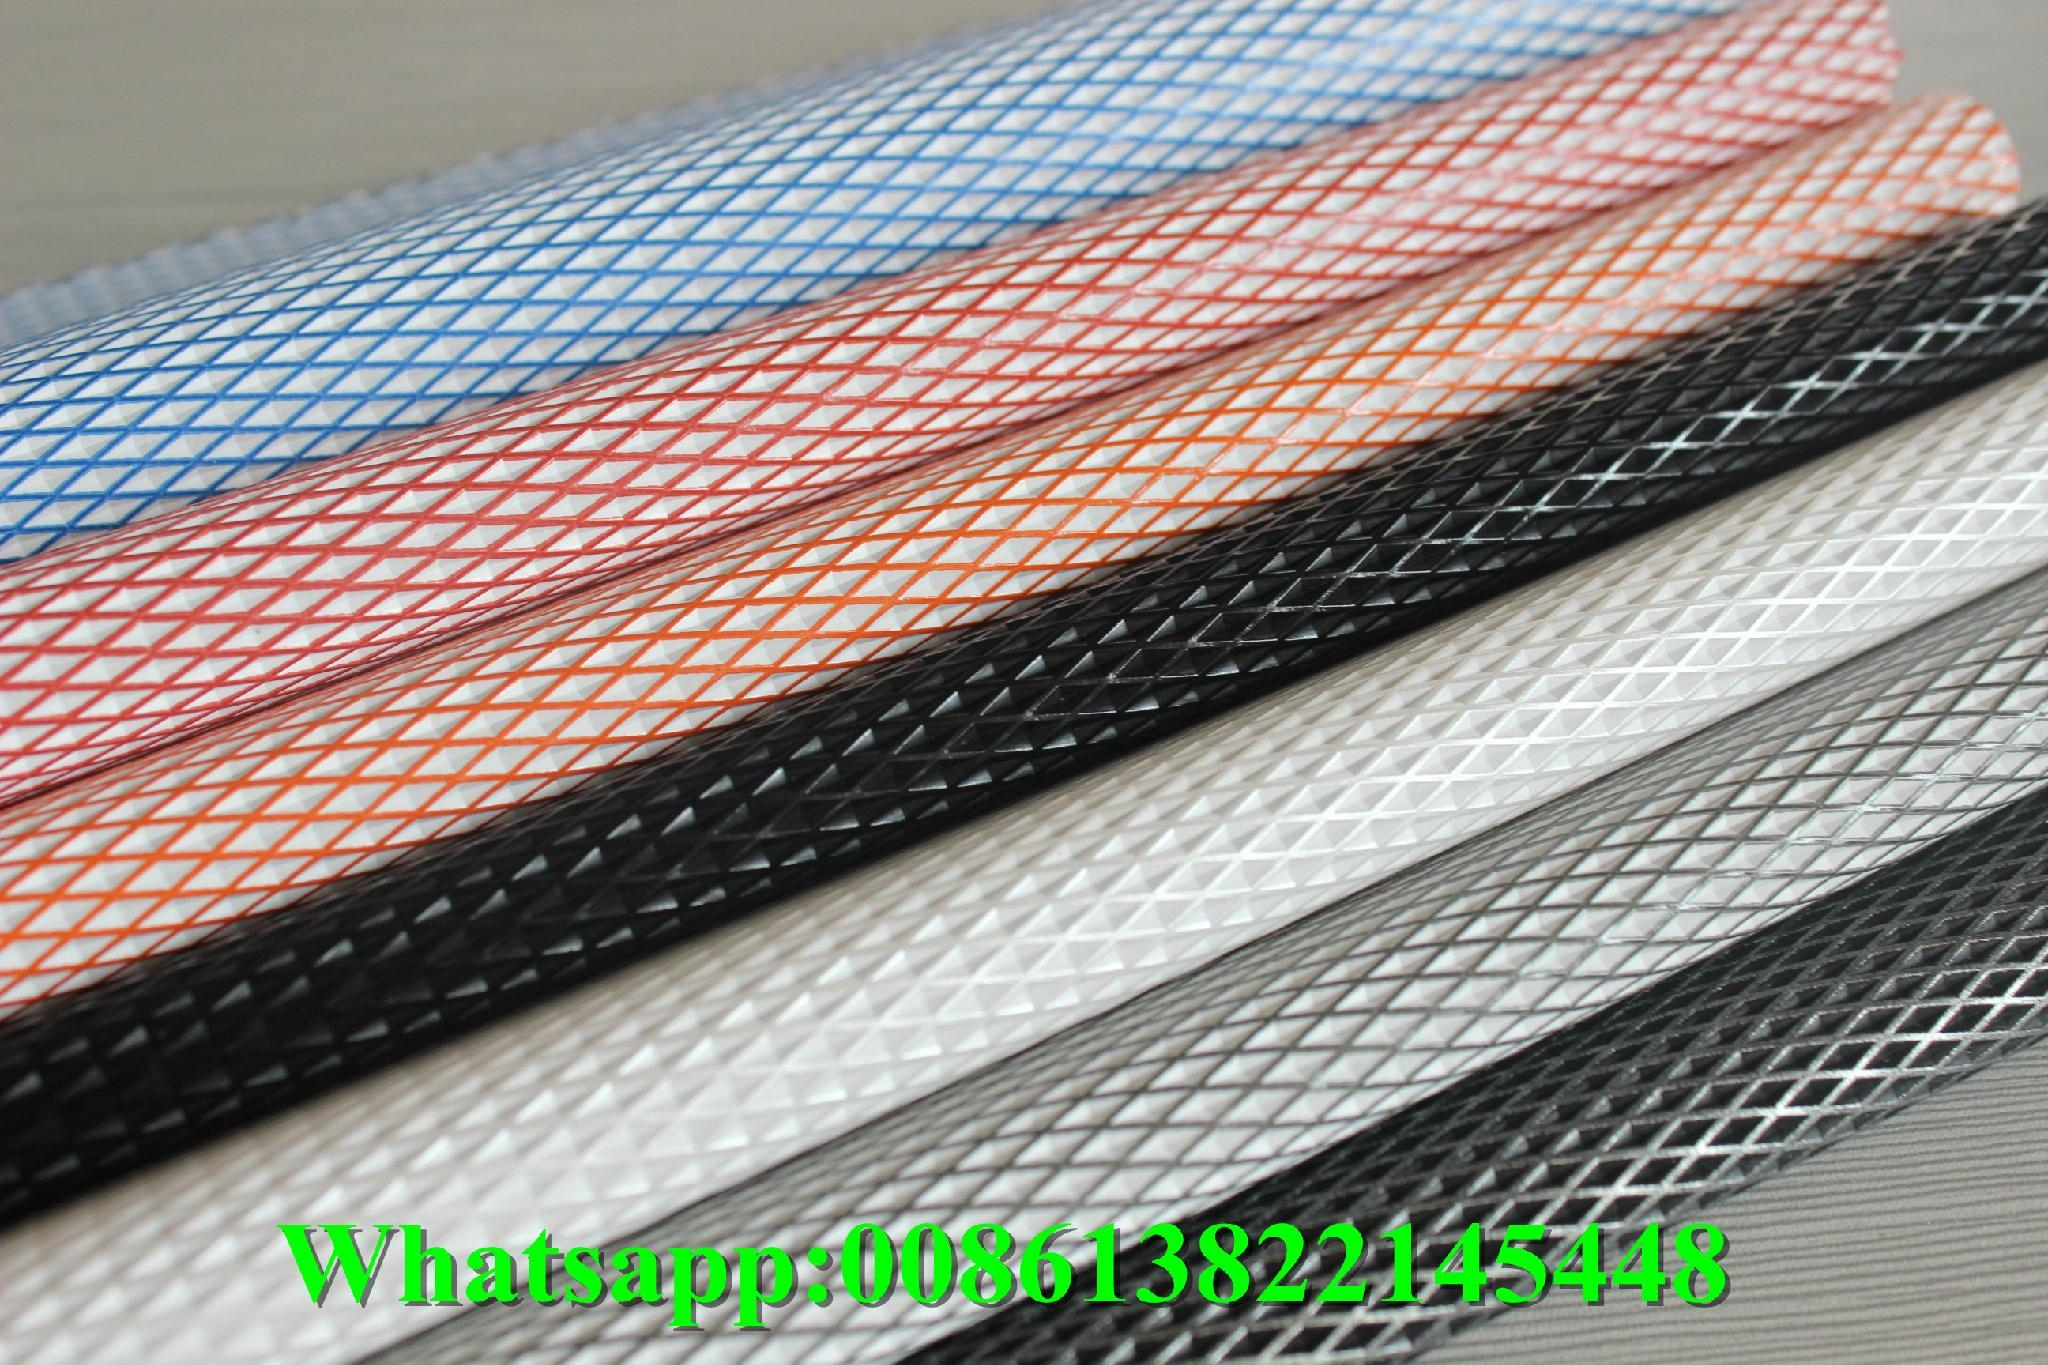 Guangzhou new design rhombus pattern embossed pvc synthetic leather fabric for u 1